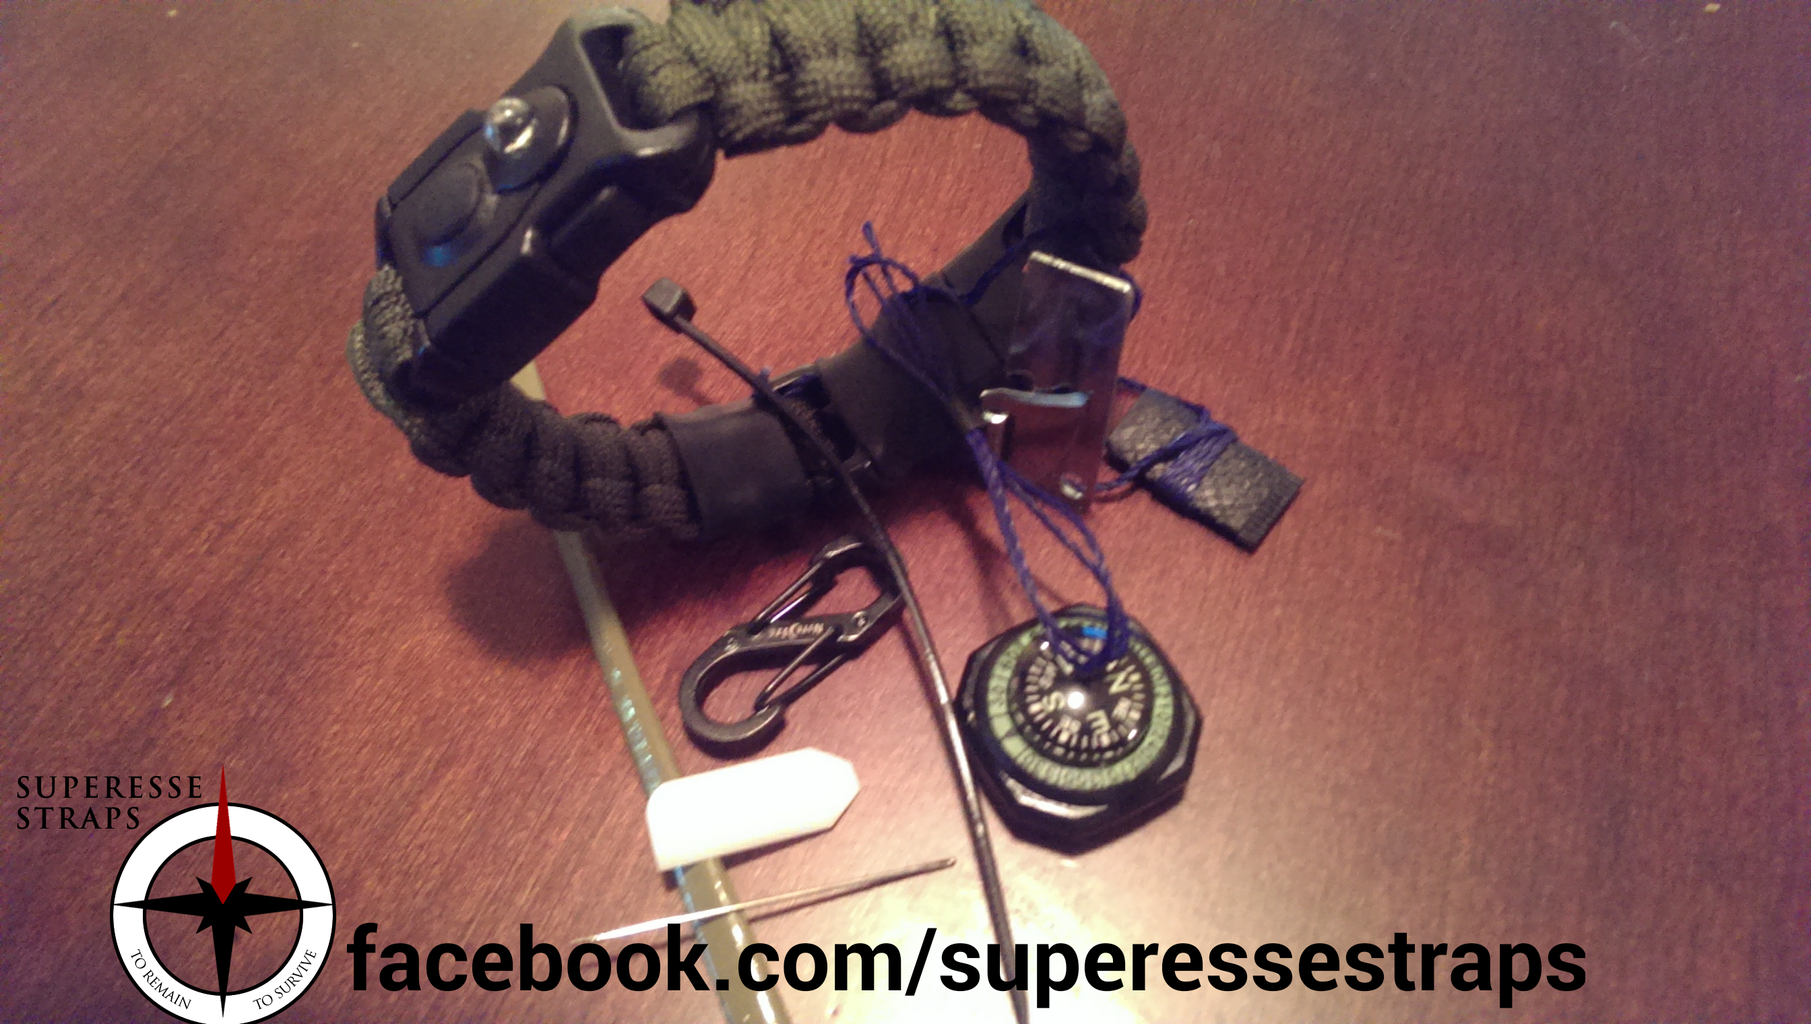 Paracord Bracelet With Survival Kit: Design Your on Emergency Bug Out Bracelet Outfitted With a First Aid Kit, Fire Starter, Fishing Supplies, Tools, Compass, Knife, and More.